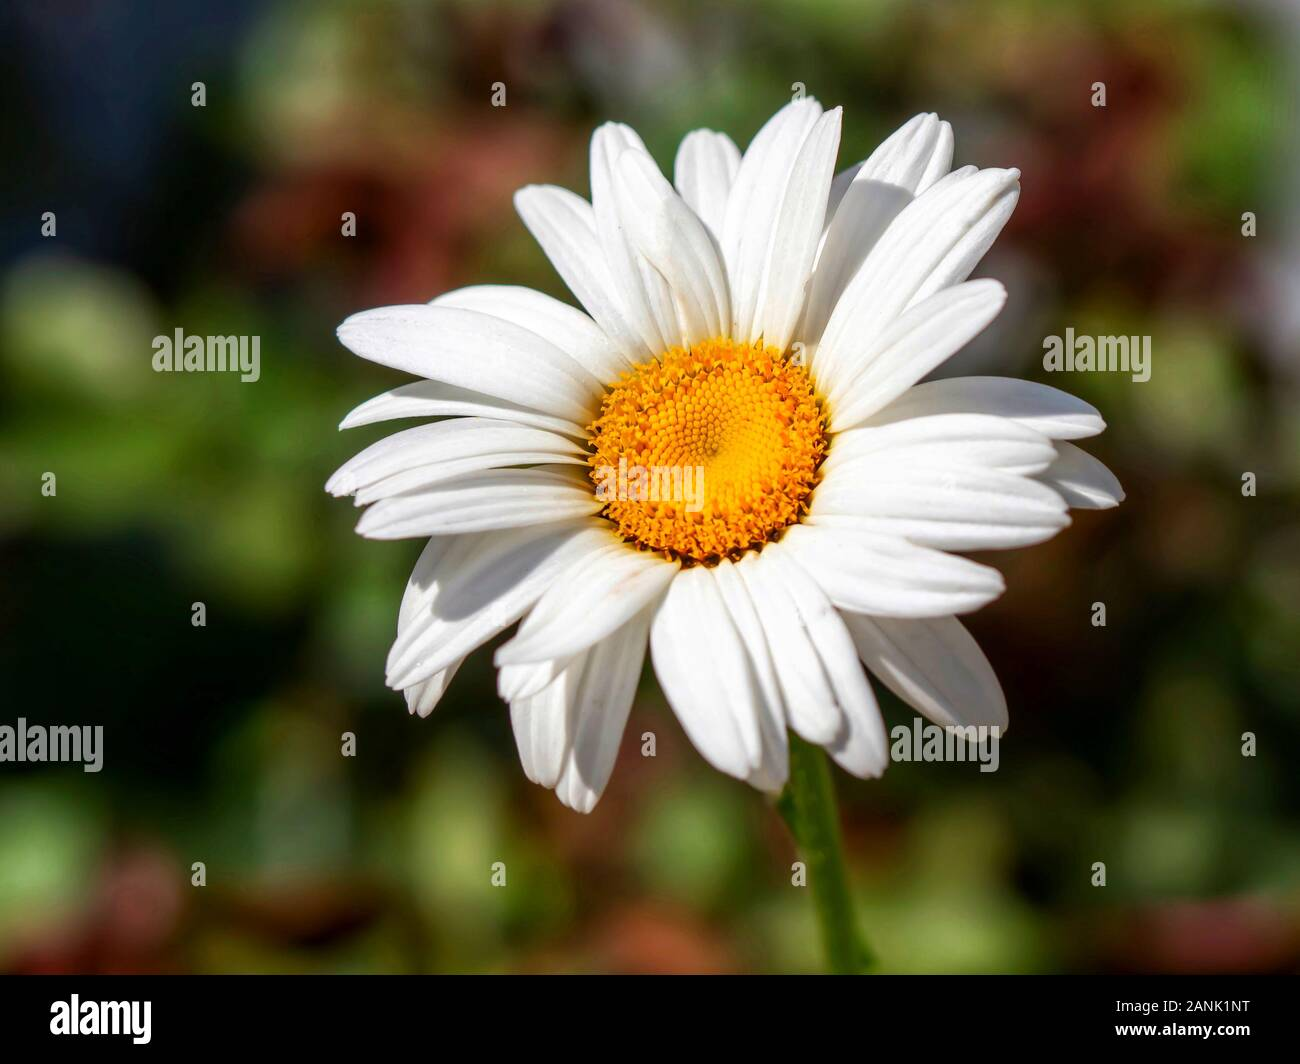 A White Daisy Bloom With Yellow Center Against Green And Brown Background Stock Photo Alamy In the first video, we are introduced to alan, the monster that her father created in a lab before he disappeared. alamy